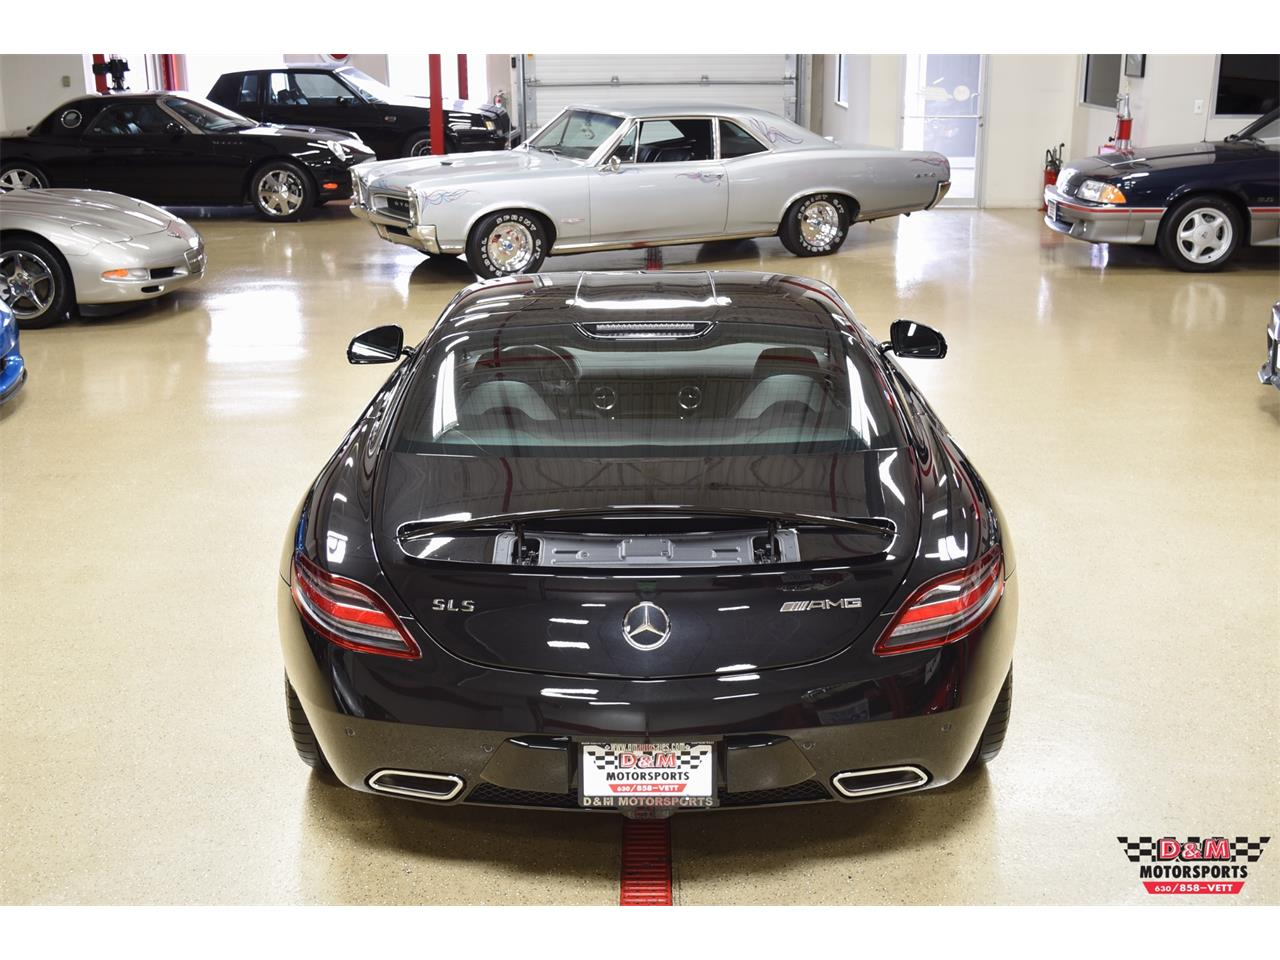 Large Picture of '12 SLS AMG Offered by D & M Motorsports - PXCB